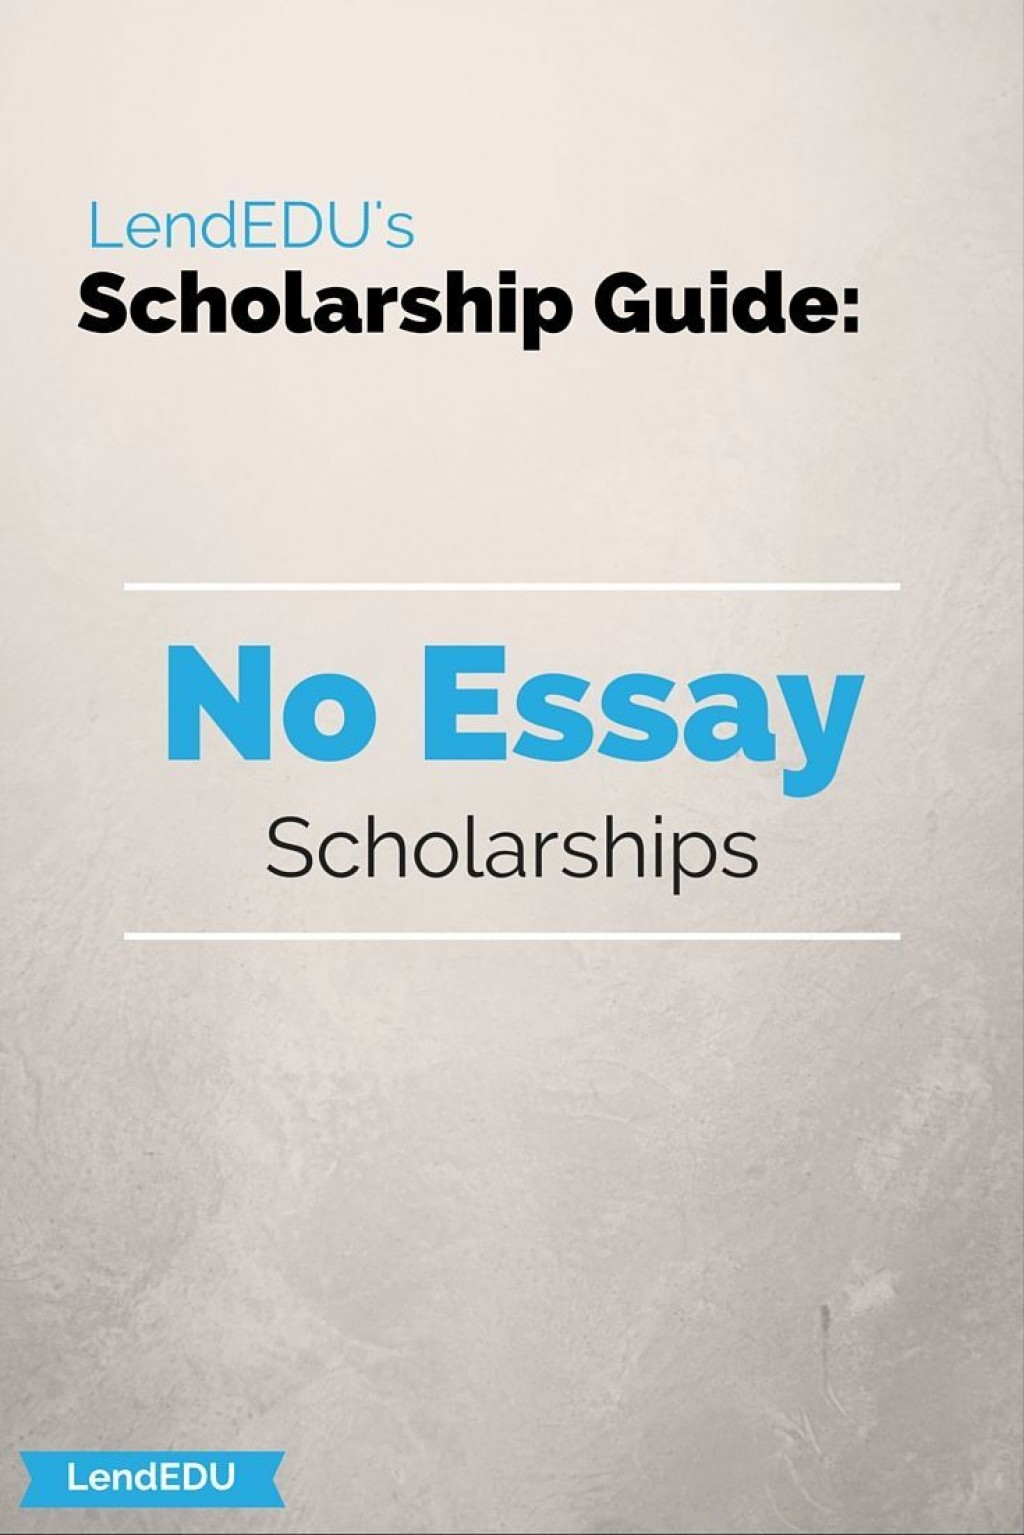 016 Essay Example No Scholarship Wondrous Scholarships For High School Freshman Seniors 2019 Large